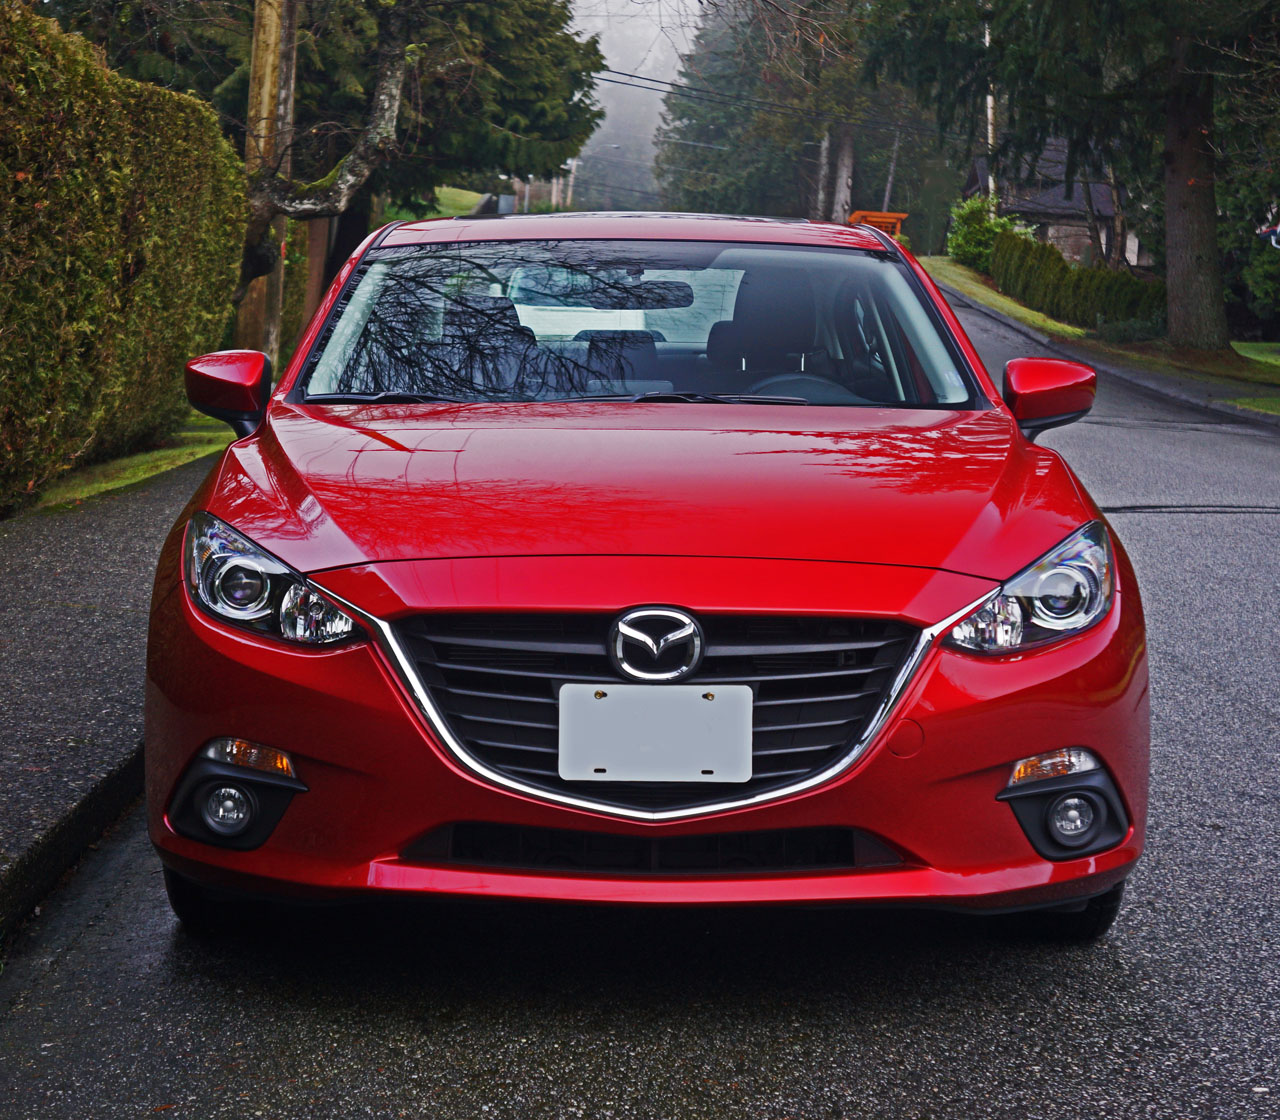 Mazda Canada Used Cars: 2015 Mazda3 GS Road Test Review